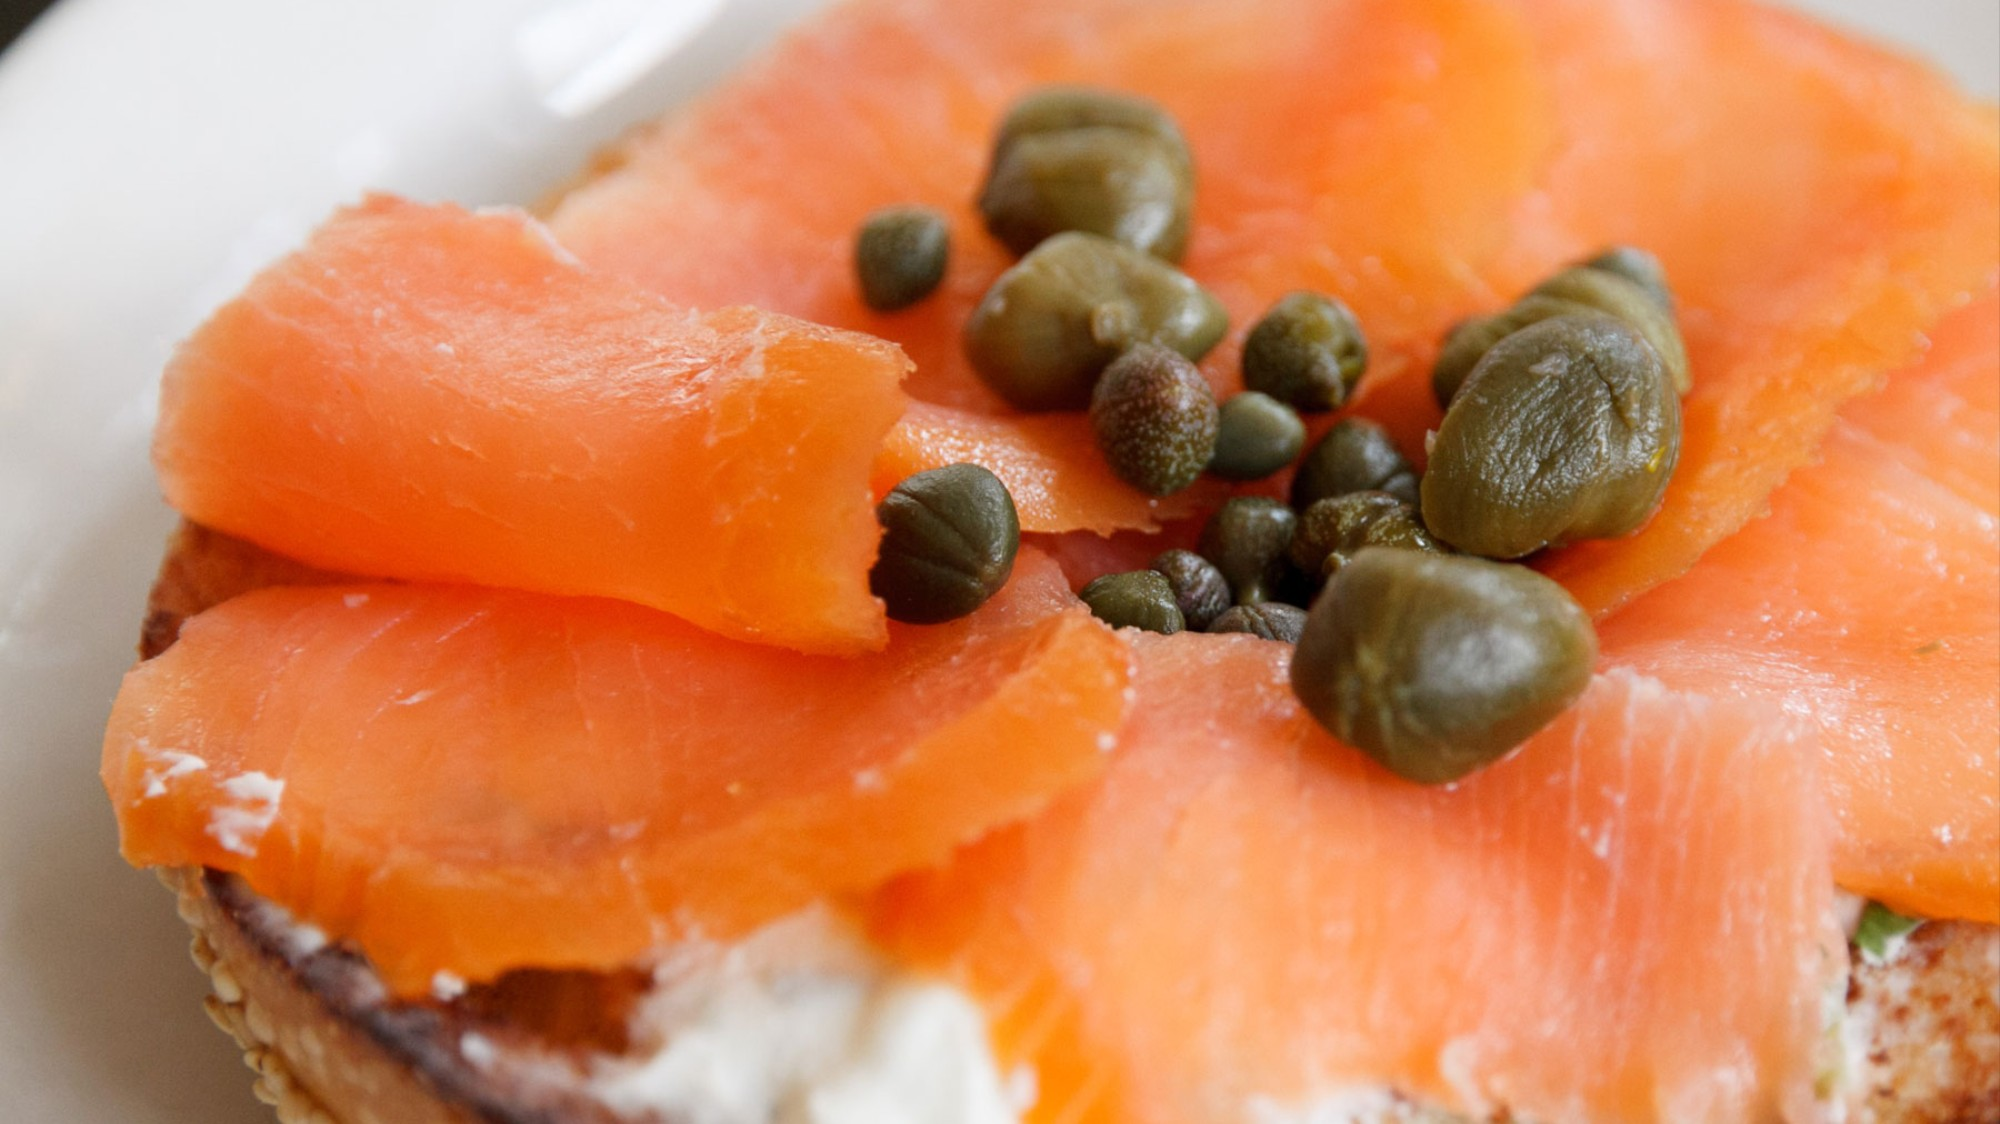 The UK's Smoked Salmon Is Covered in Lice and Shit - VICE